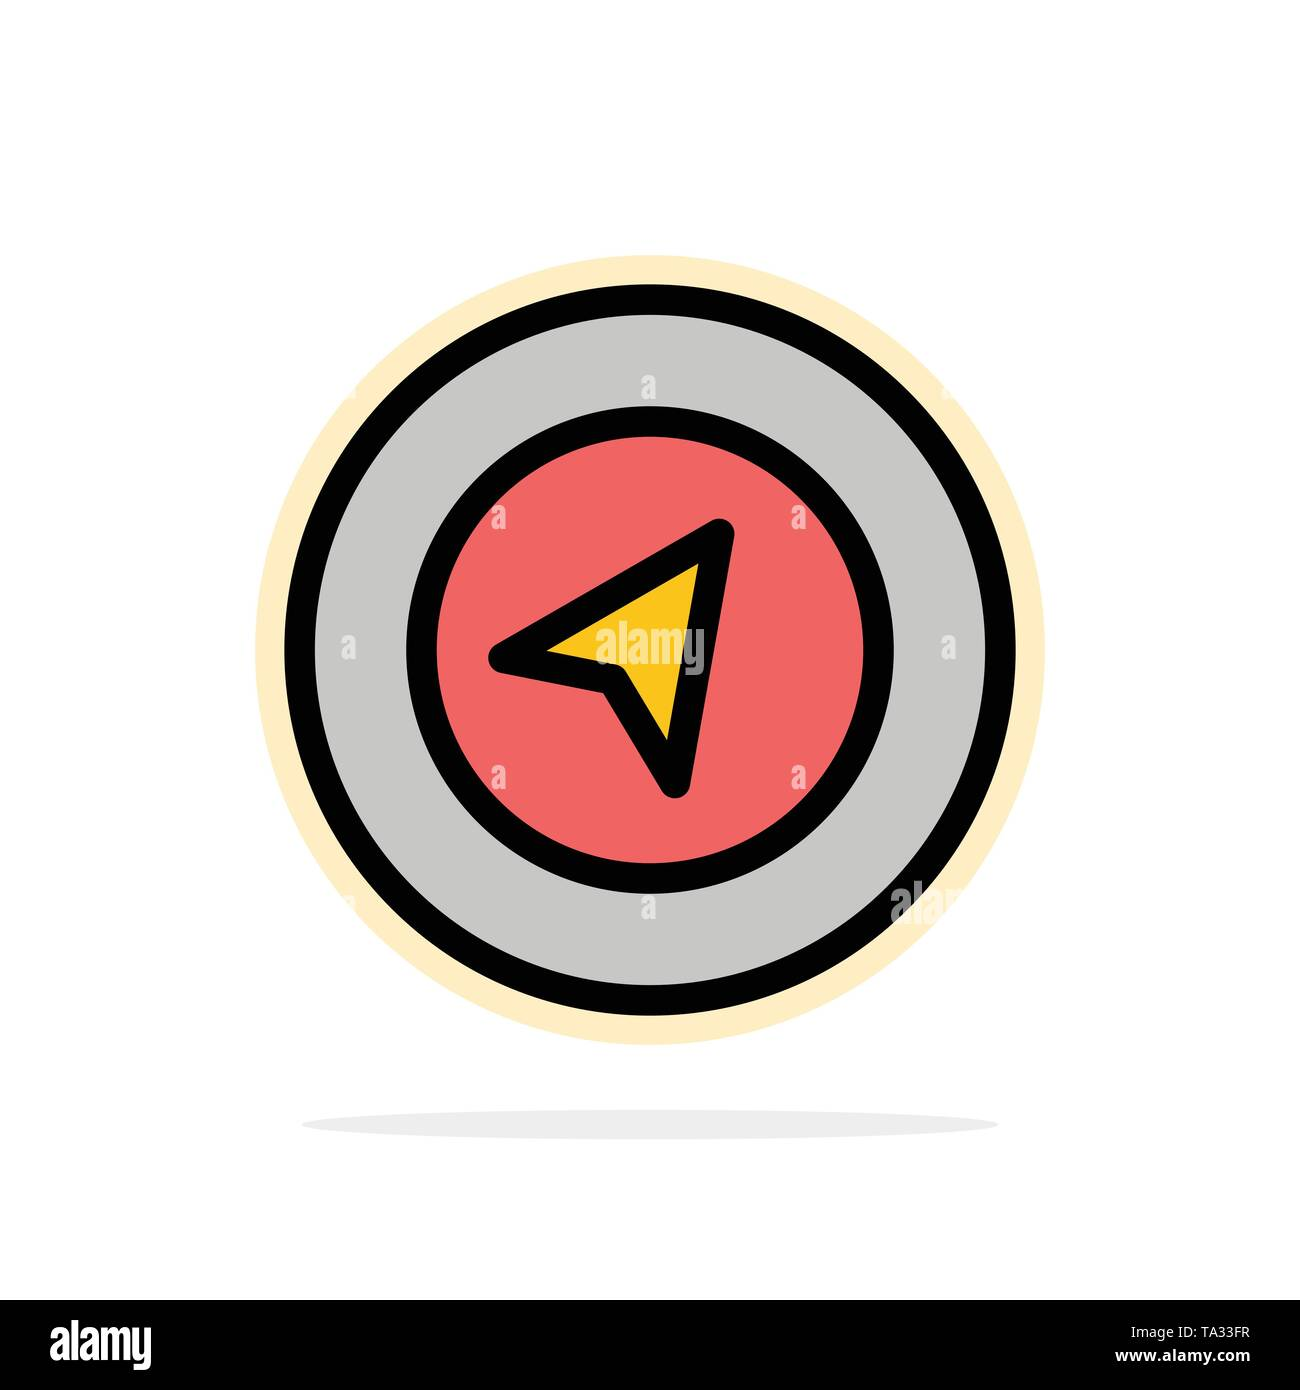 Map, Navigation, Location Abstract Circle Background Flat color Icon - Stock Image